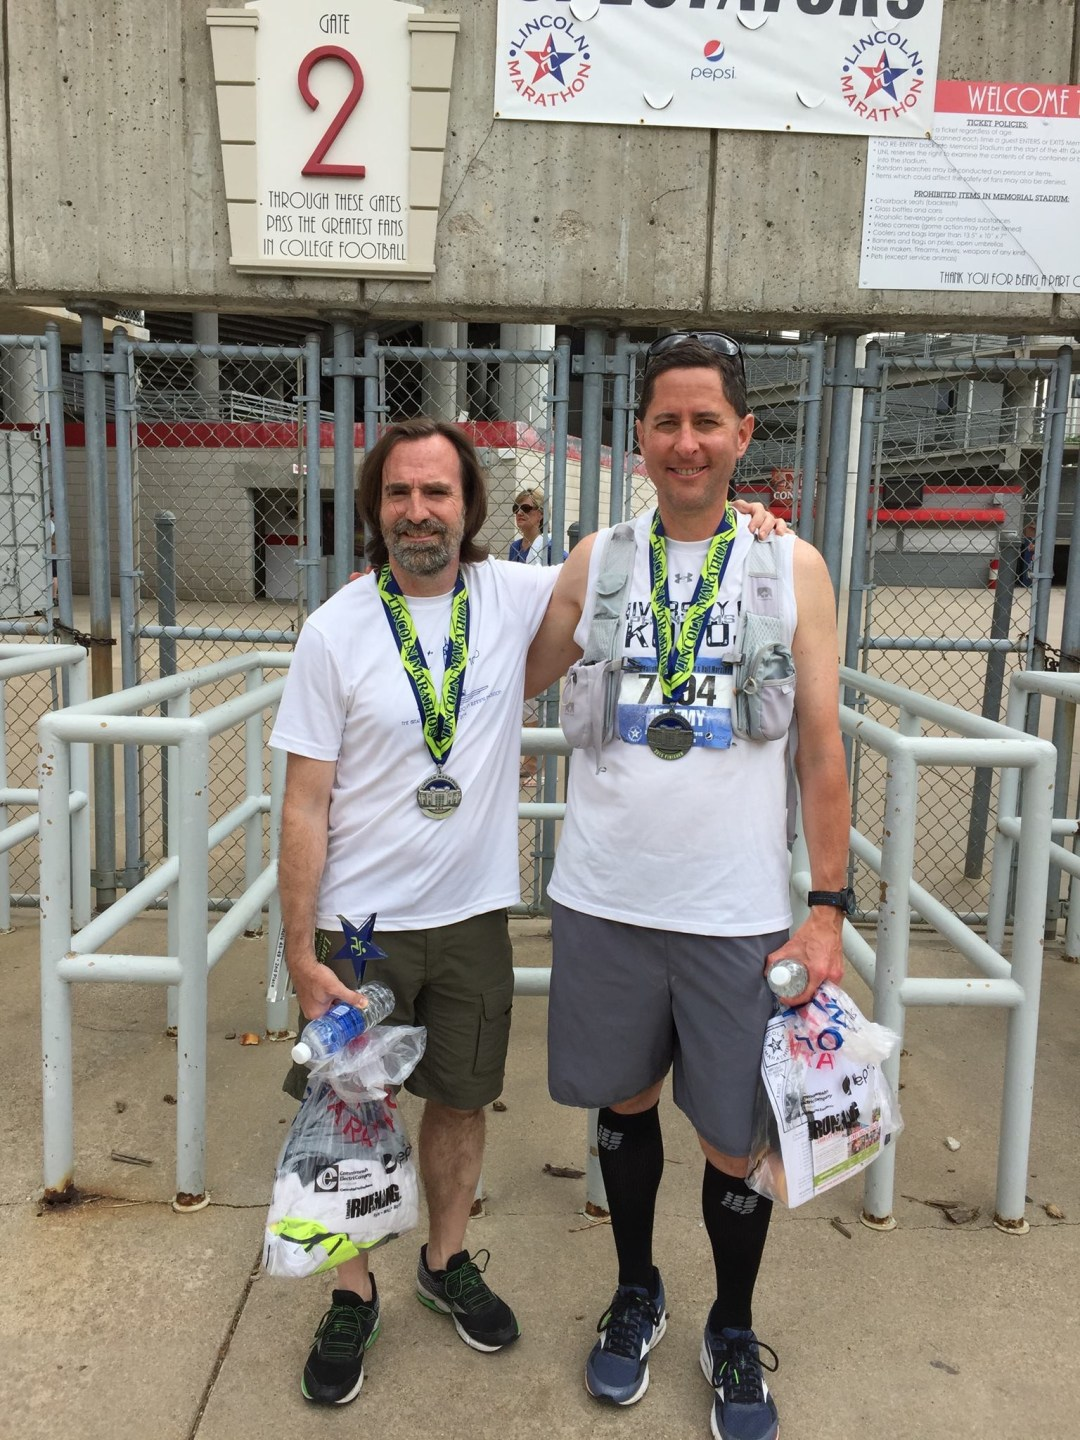 Post-race smiles with friend Phil McCarthy